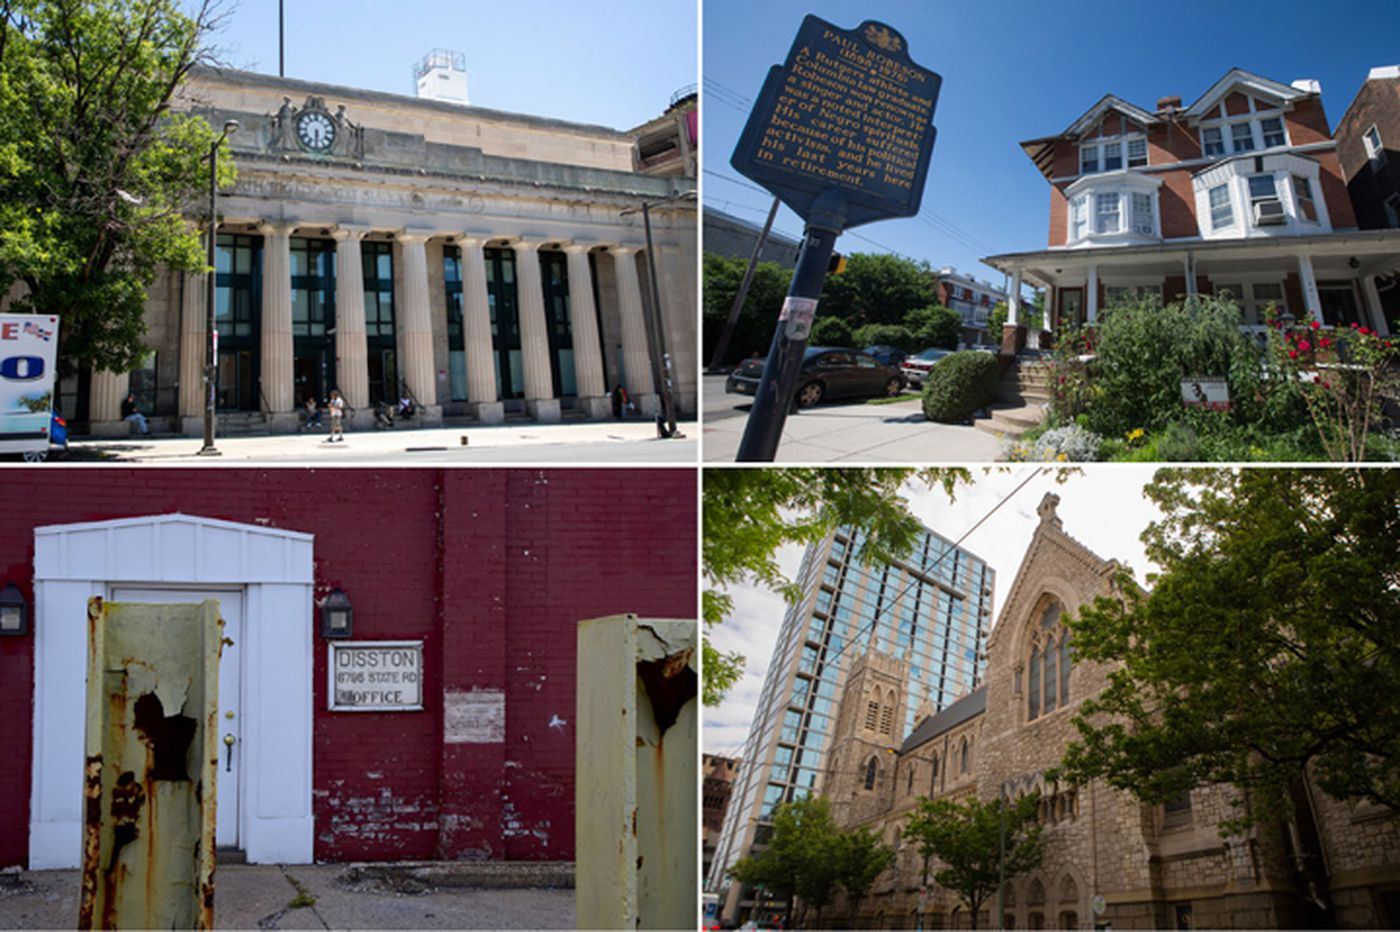 Hey, Mayor Kenney: Here are the buildings that Philadelphians want historically preserved